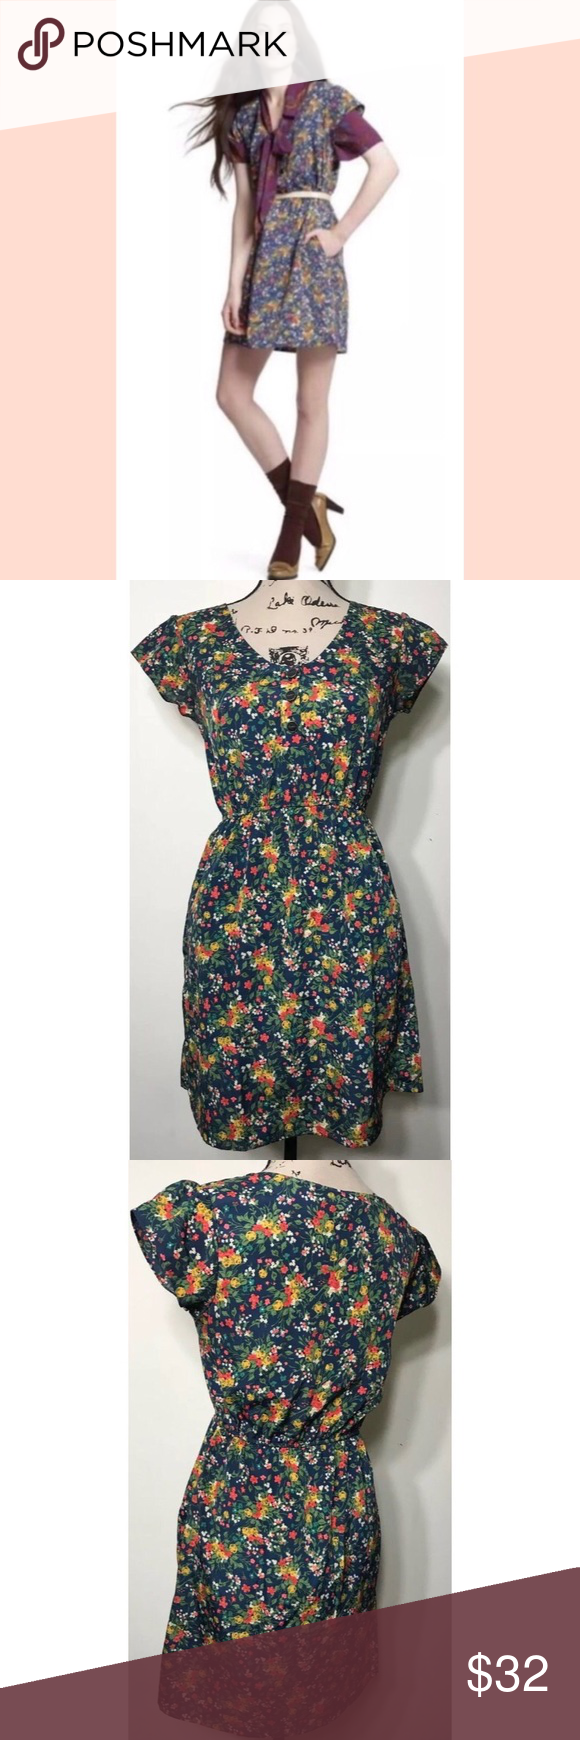 Tucker For Target Blue Floral Summer Dress Small Details Blue Mini Dress With Cute Flowers By Target In Collaboration With Floral Dress Summer Summer Dresses [ 1740 x 580 Pixel ]